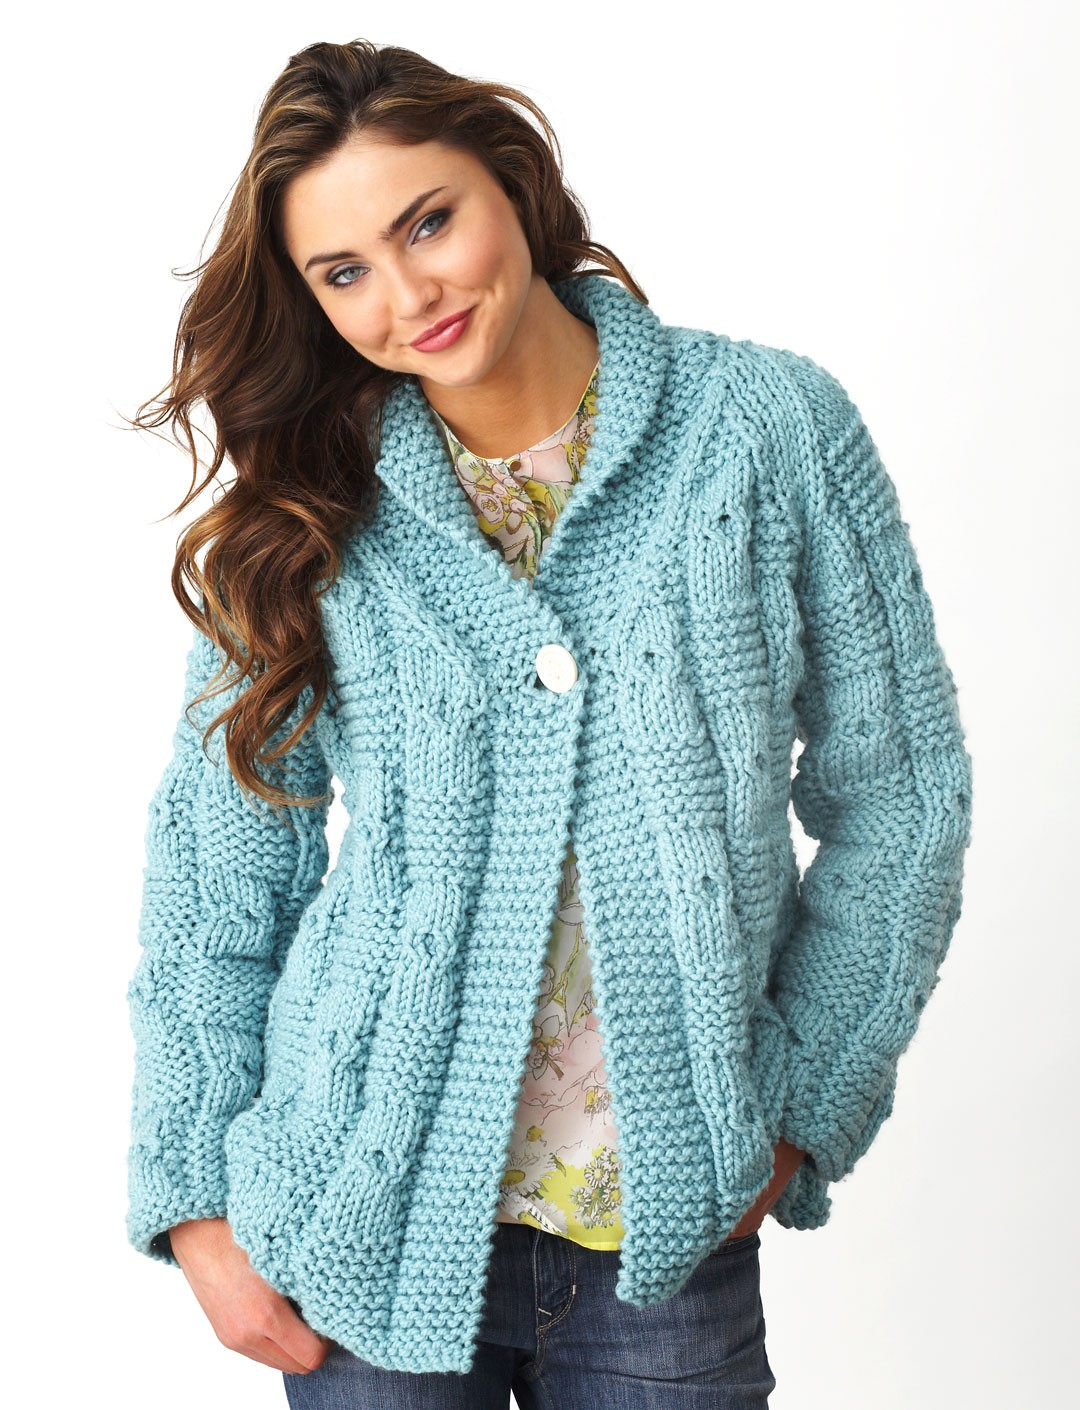 Chunky Knit Jumper Pattern Free : Bernat Textured Checks Cardigan, Knit Pattern Yarnspirations